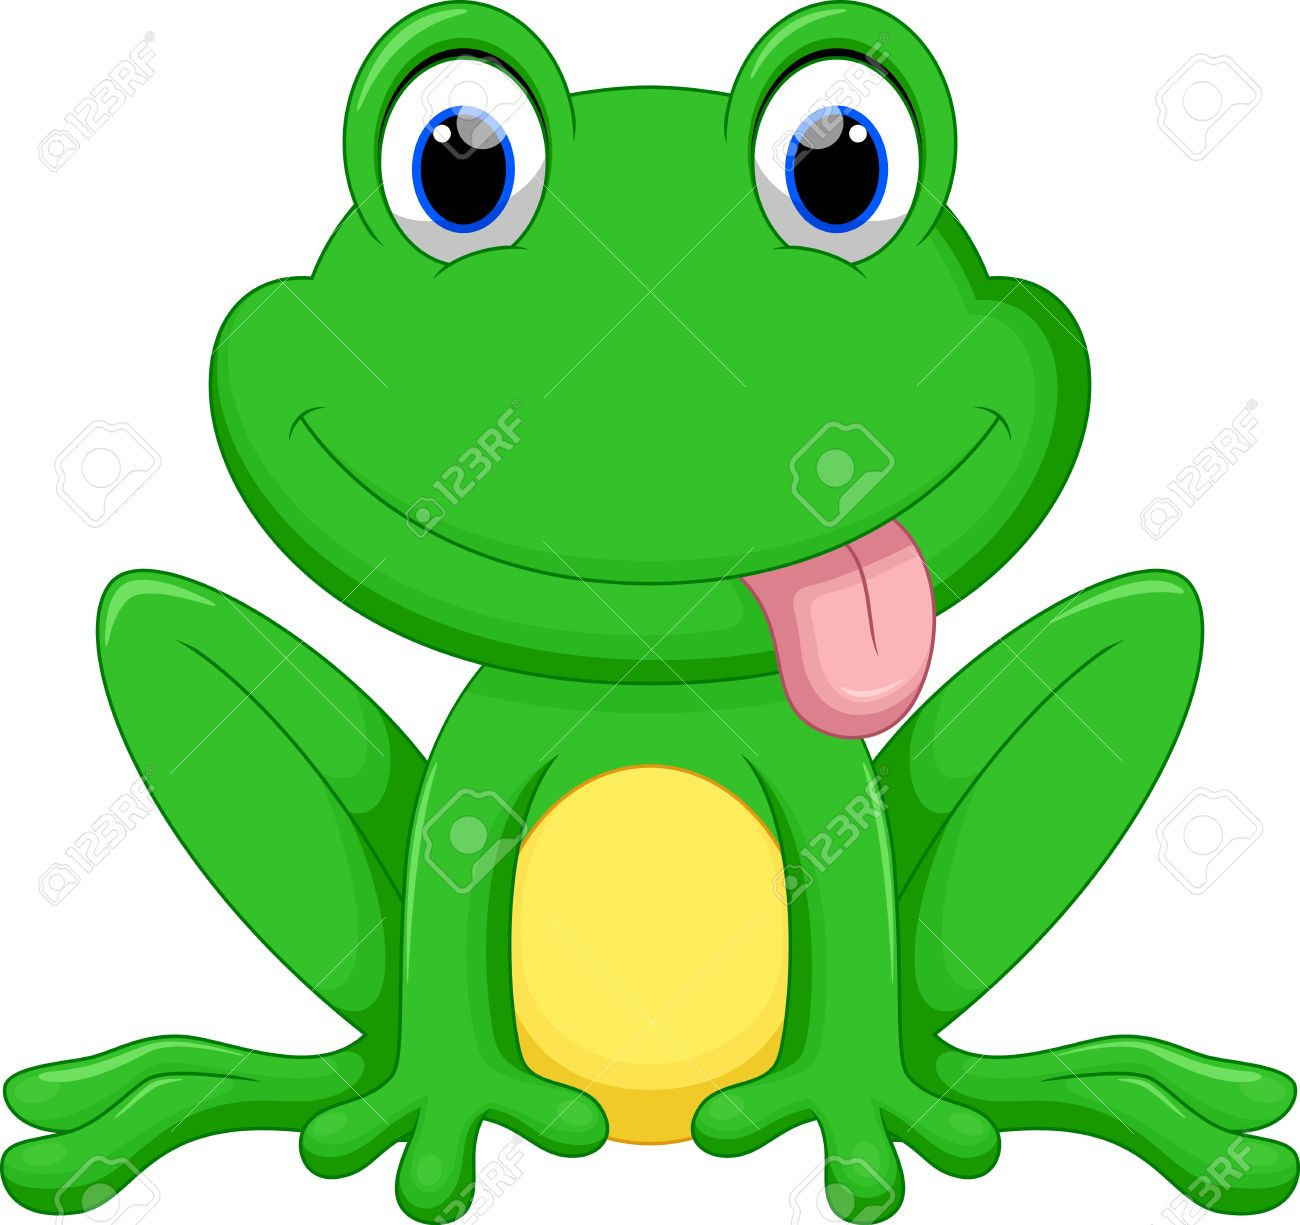 hight resolution of 1300x1225 excellent cartoon frog pictures cute royalty free cliparts vectors